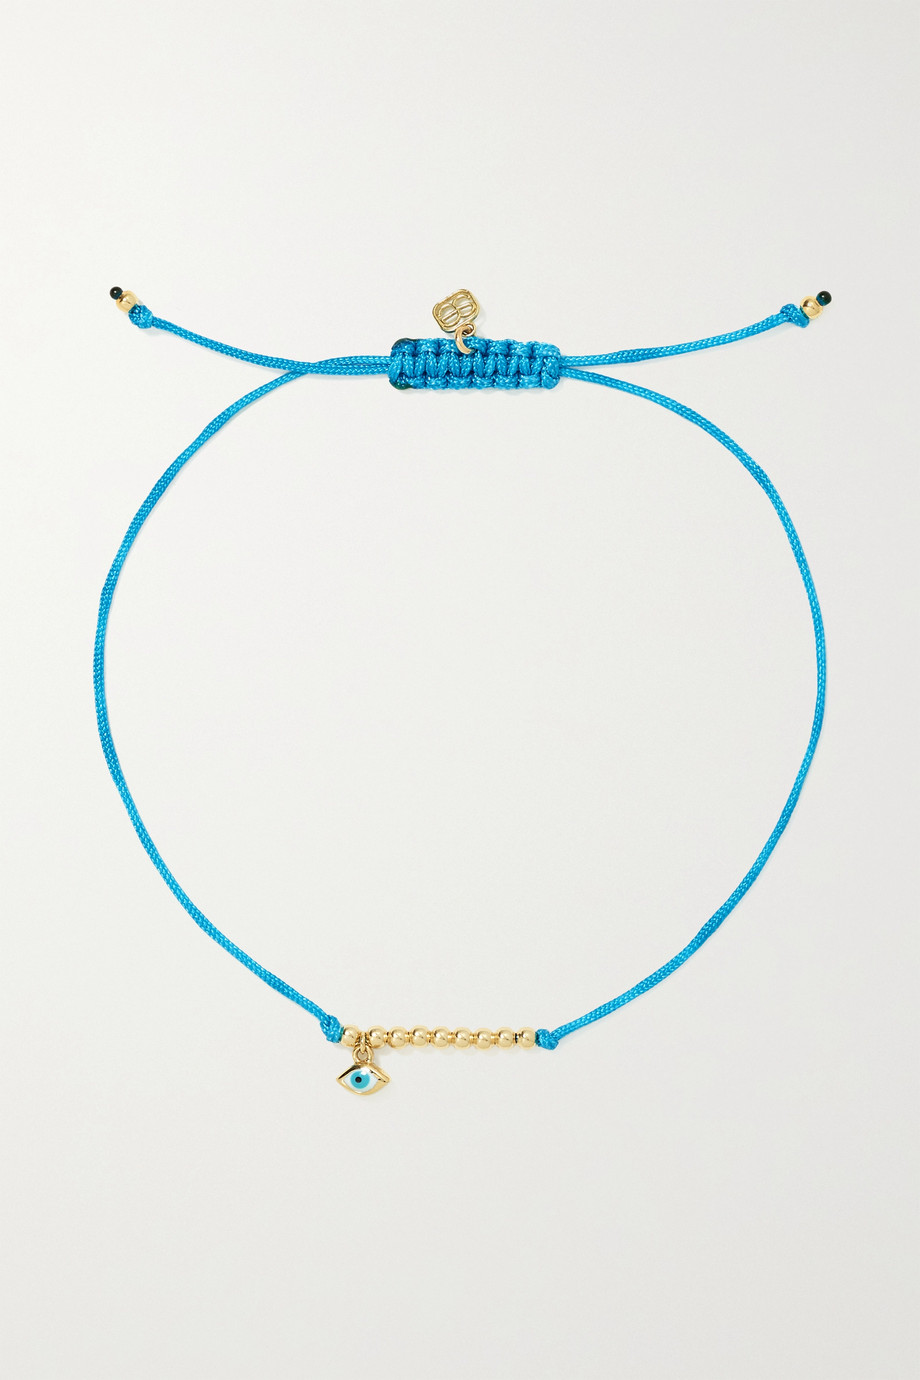 Sydney Evan Evil Eye 14-karat gold, cord and enamel bracelet